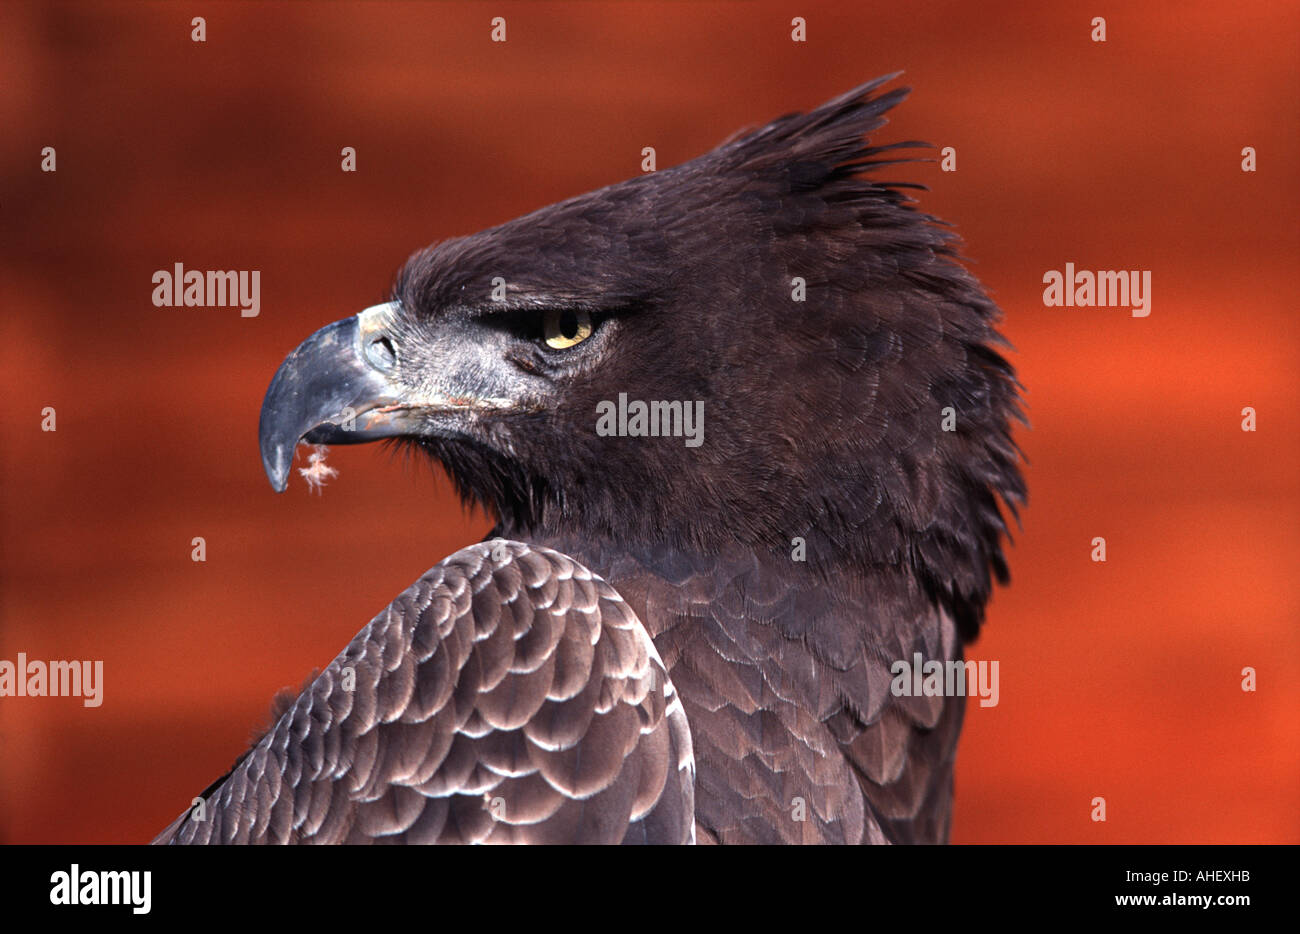 Portrait of an Eagle Likely a Martial Eagle Polemaetus bellicosus Photographed in South Africa - Stock Image